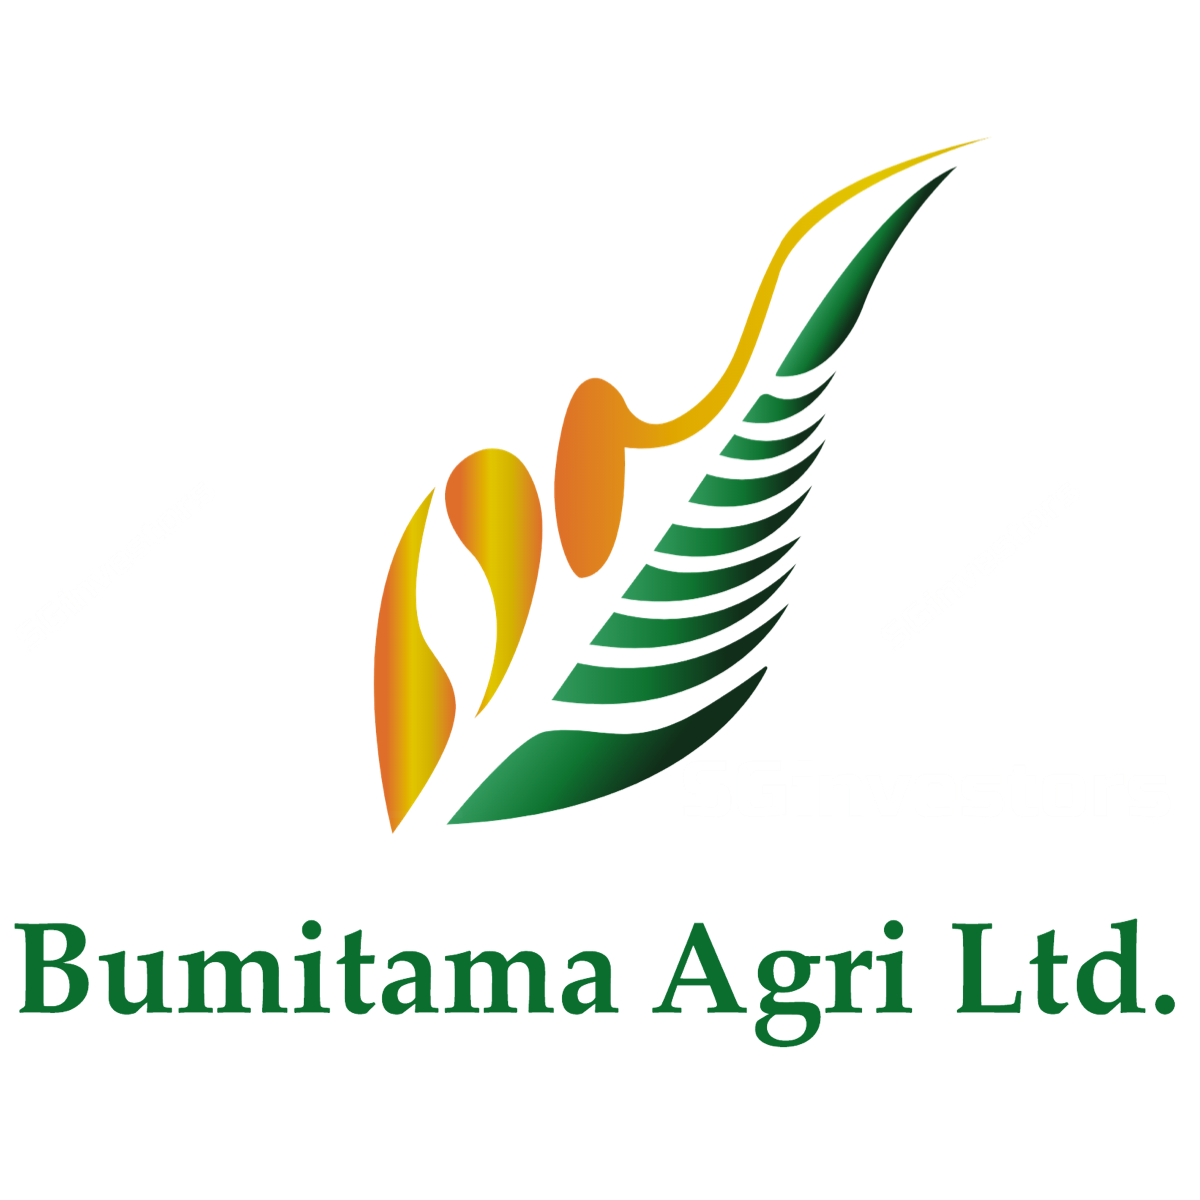 Bumitama Agri - DBS Vickers 2018-07-02: Shifting To Pure Upstream Play